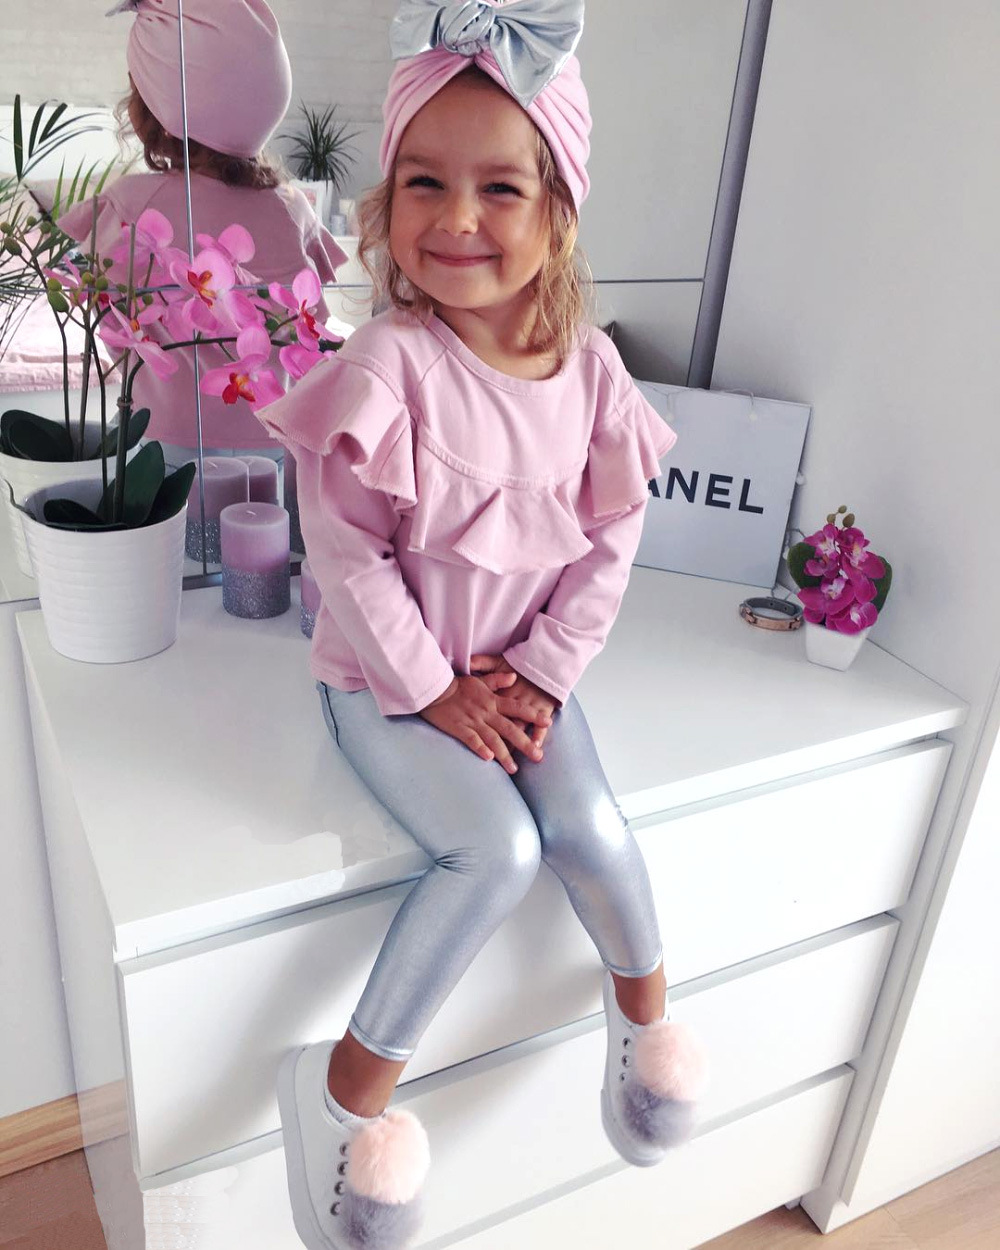 Youngsters Ladies Garments Child Clothes Units New child Child Woman Lengthy Sleeve Ruffles Pink Prime+ Silver Leather-based Pants+Hat 3pcs Outfits Set clothes units, outfit set, youngsters lady garments,Low-cost clothes...